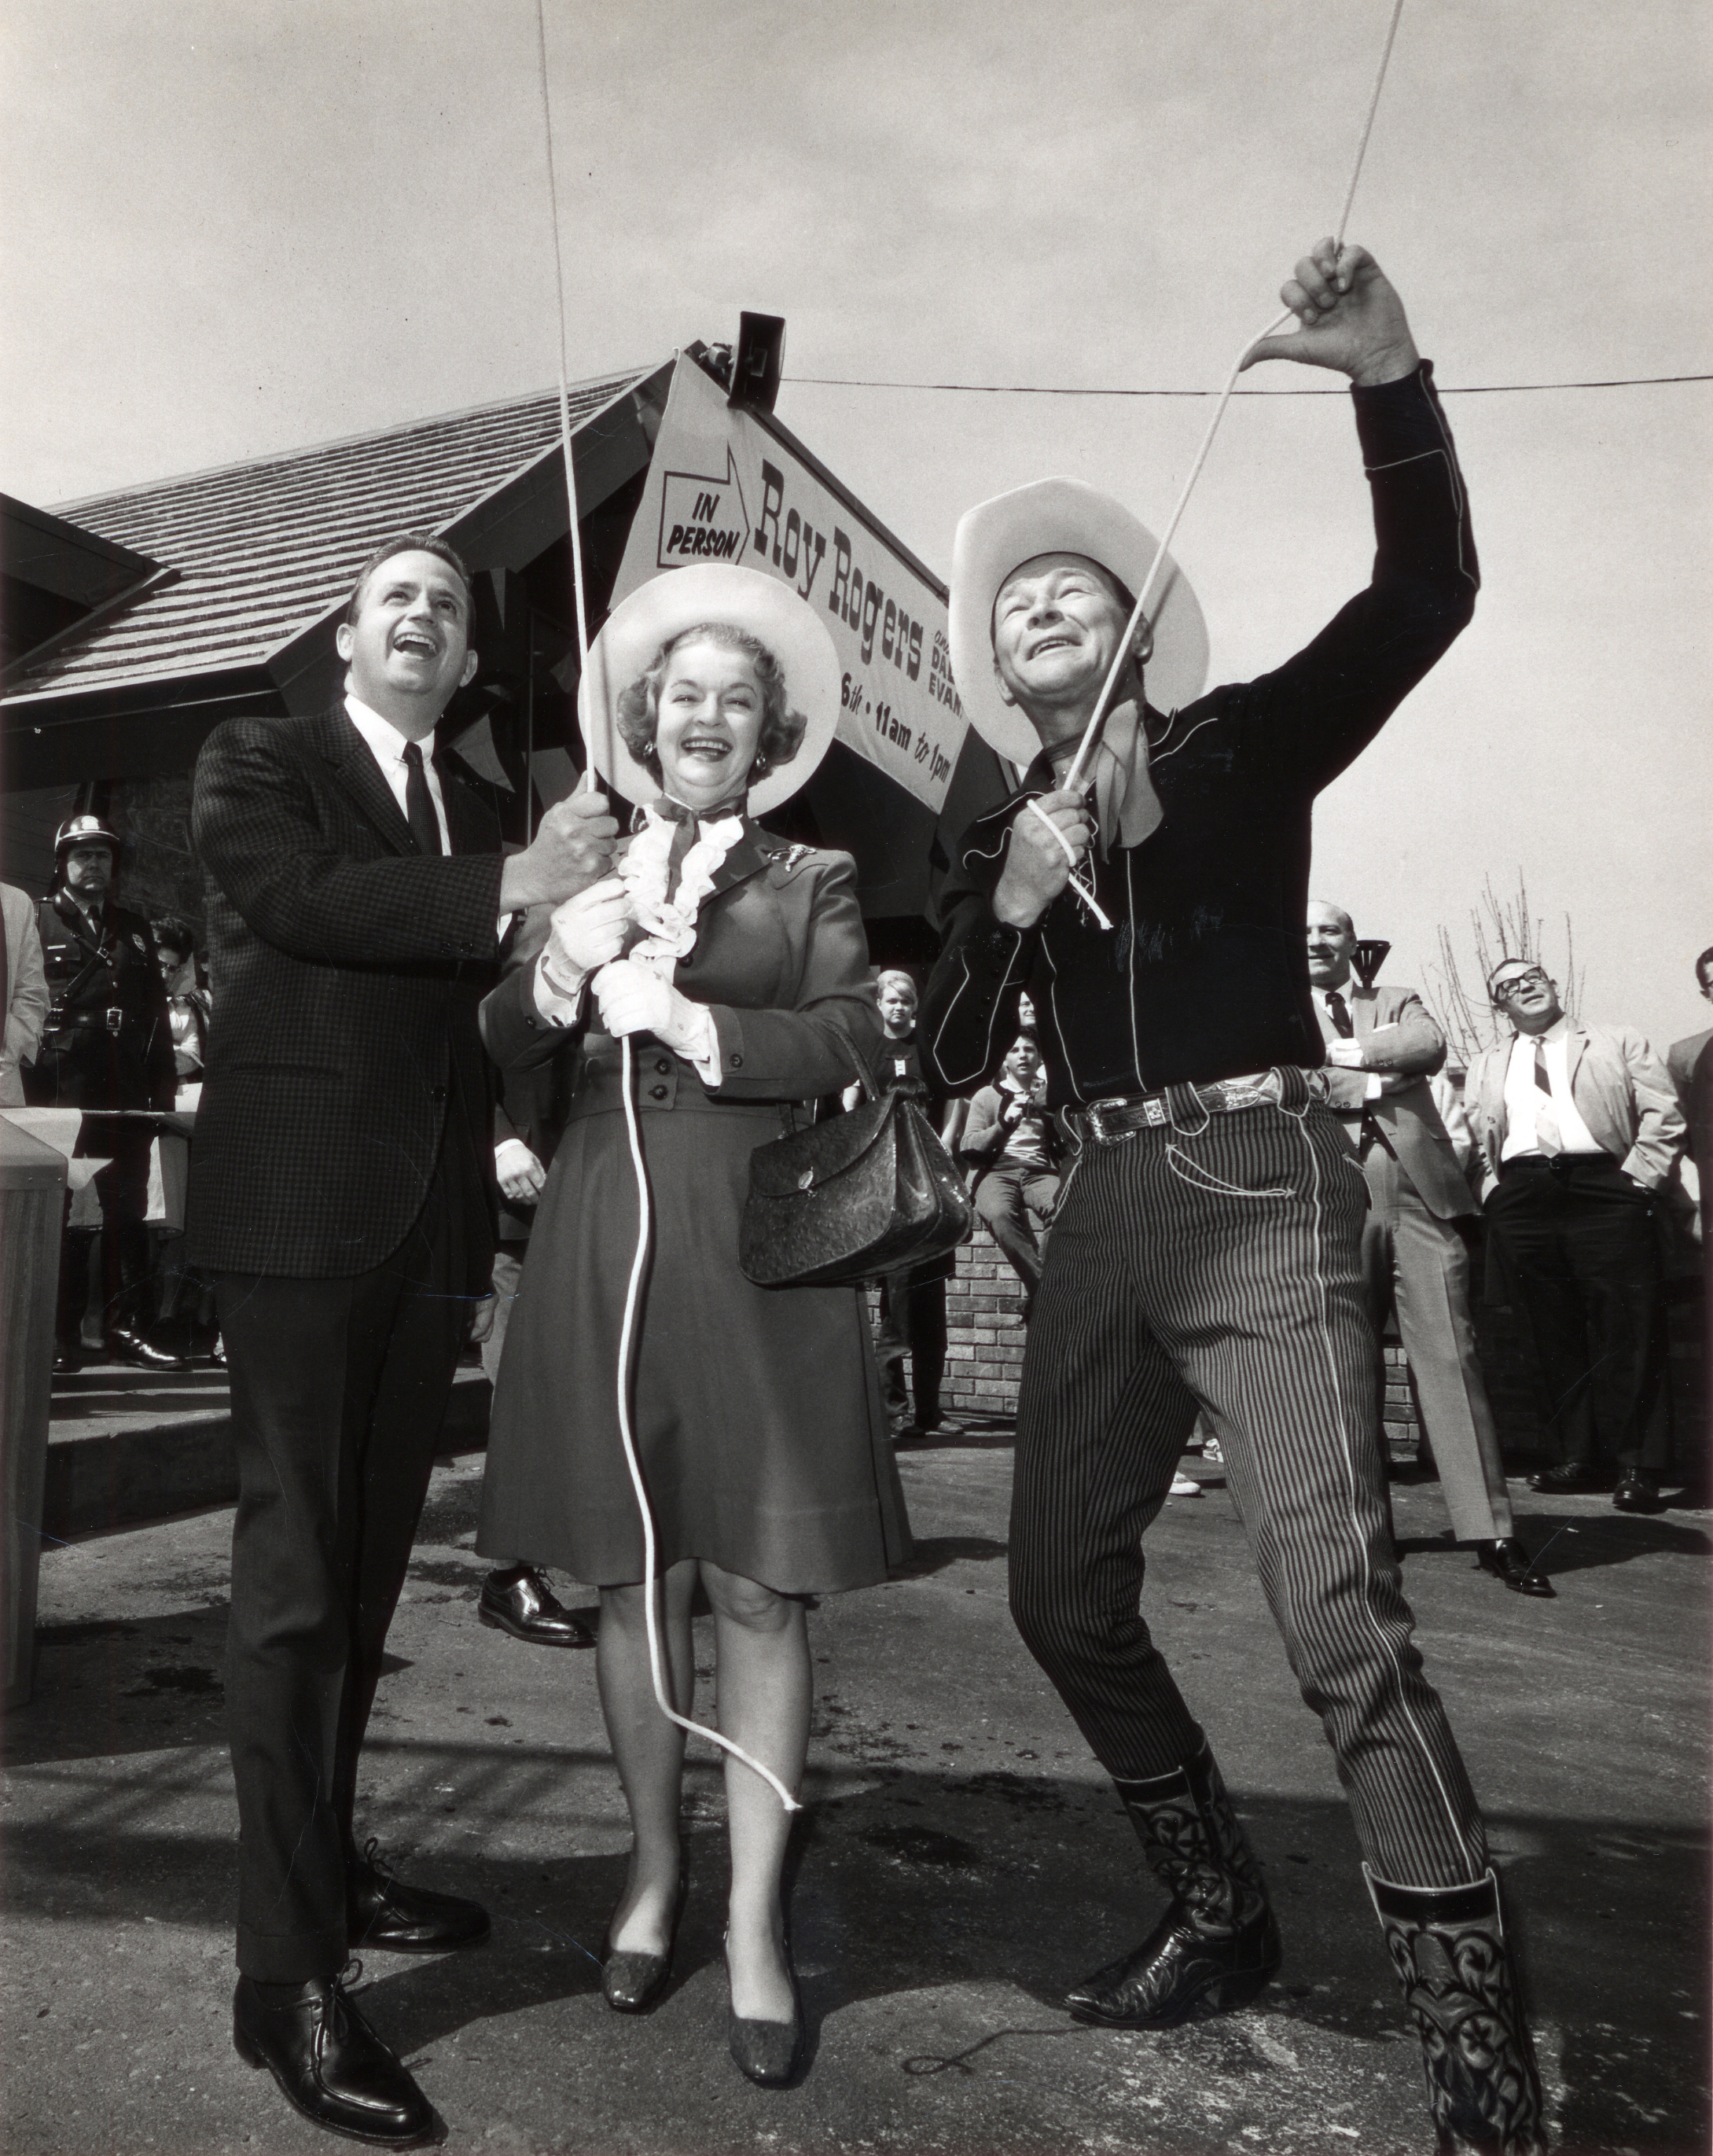 A Roy Rogers opening with Roy (born Leonard Franklin Slye) himself.